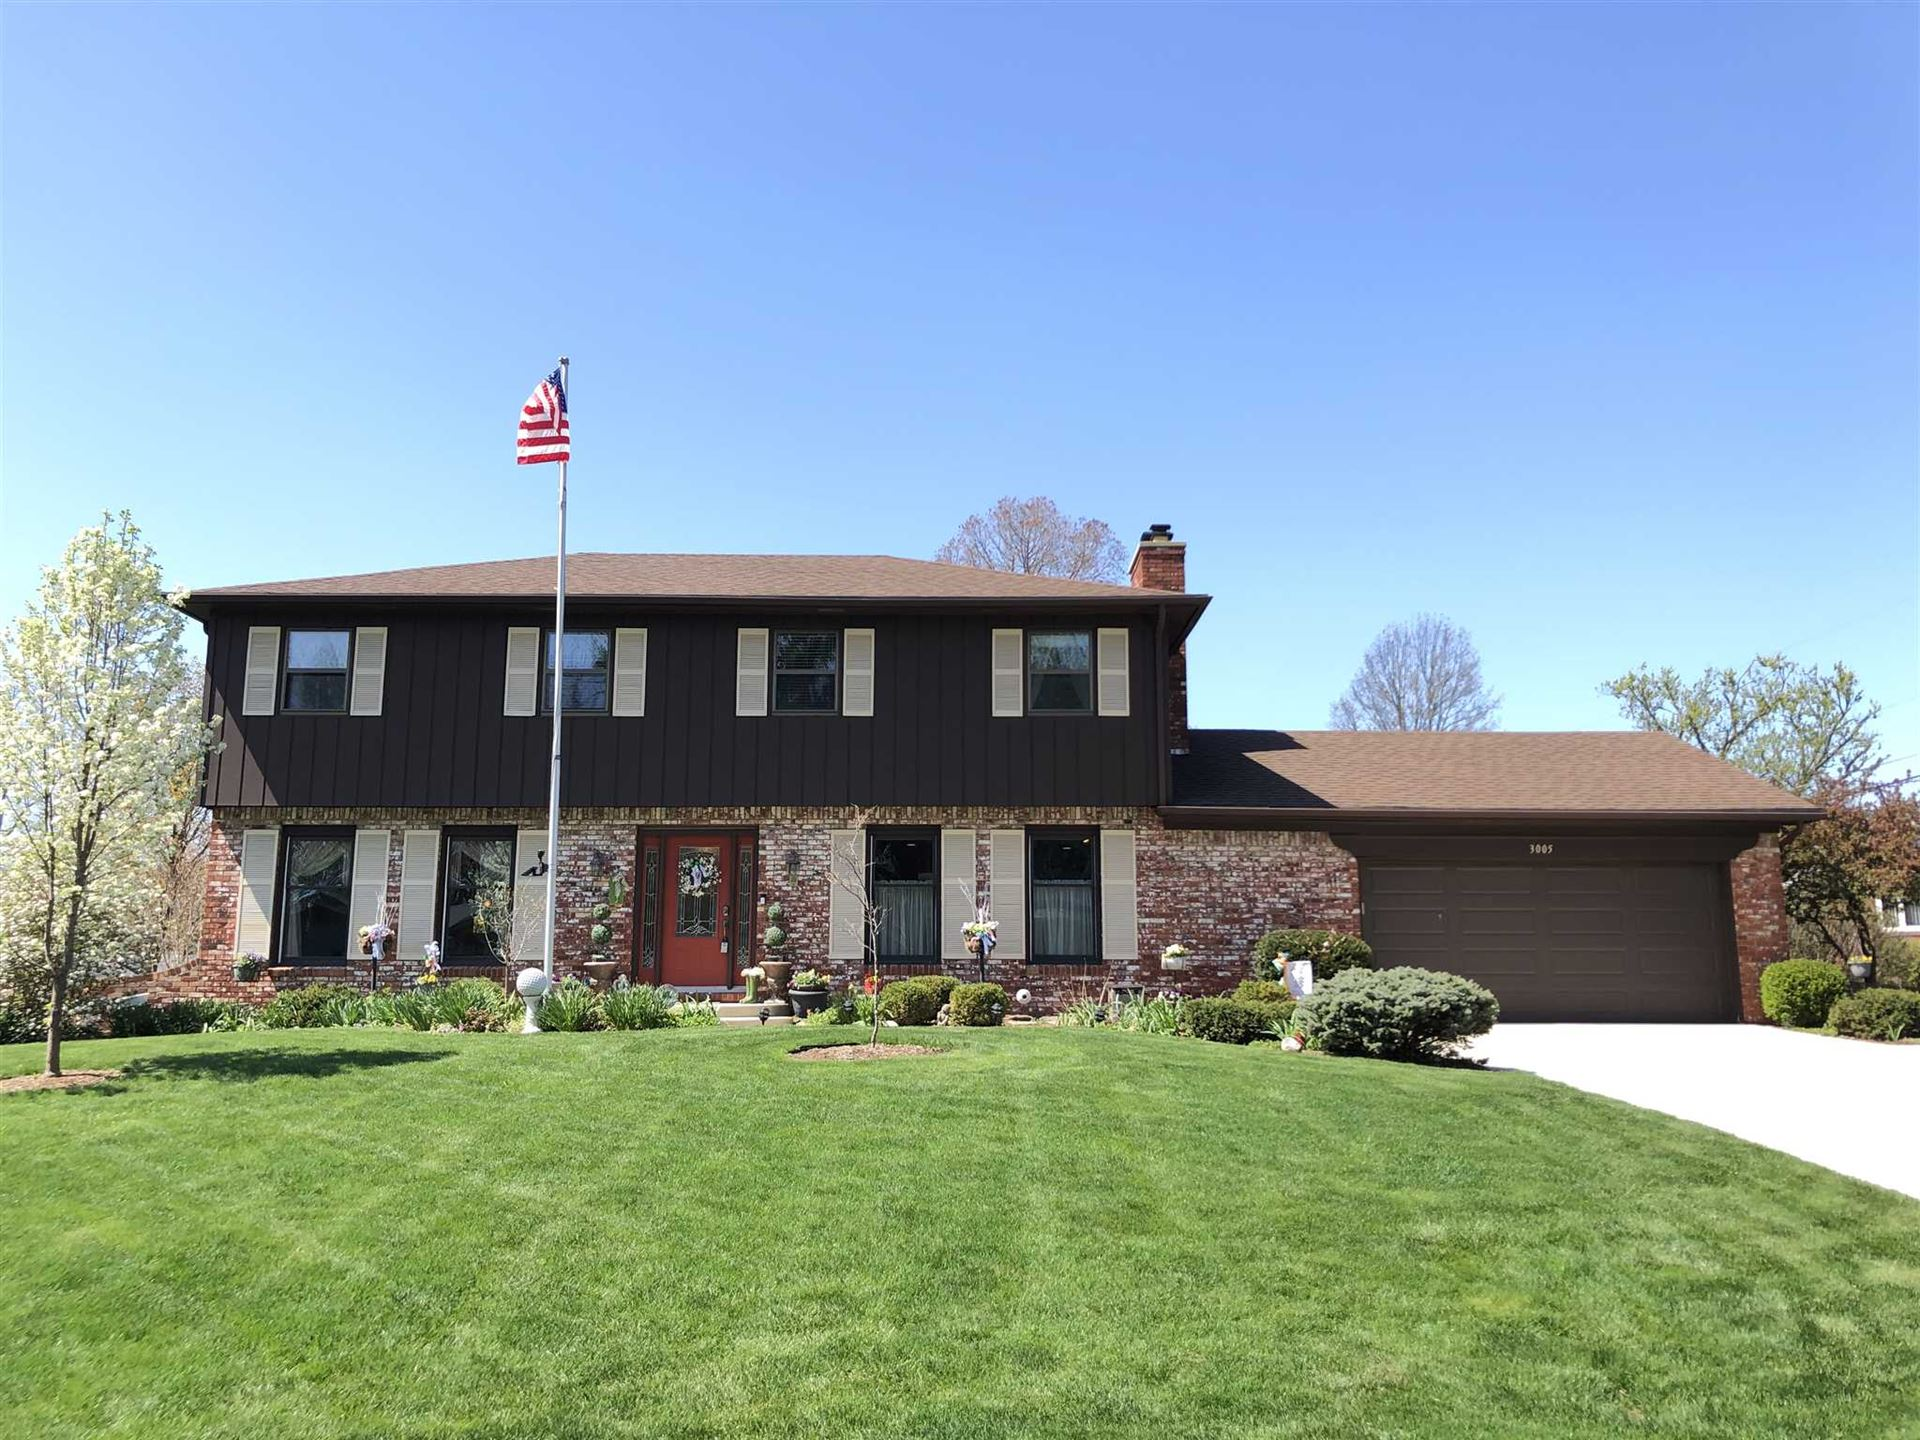 3005 Susan Drive, Kokomo, IN 46902 - MLS#: 202109507